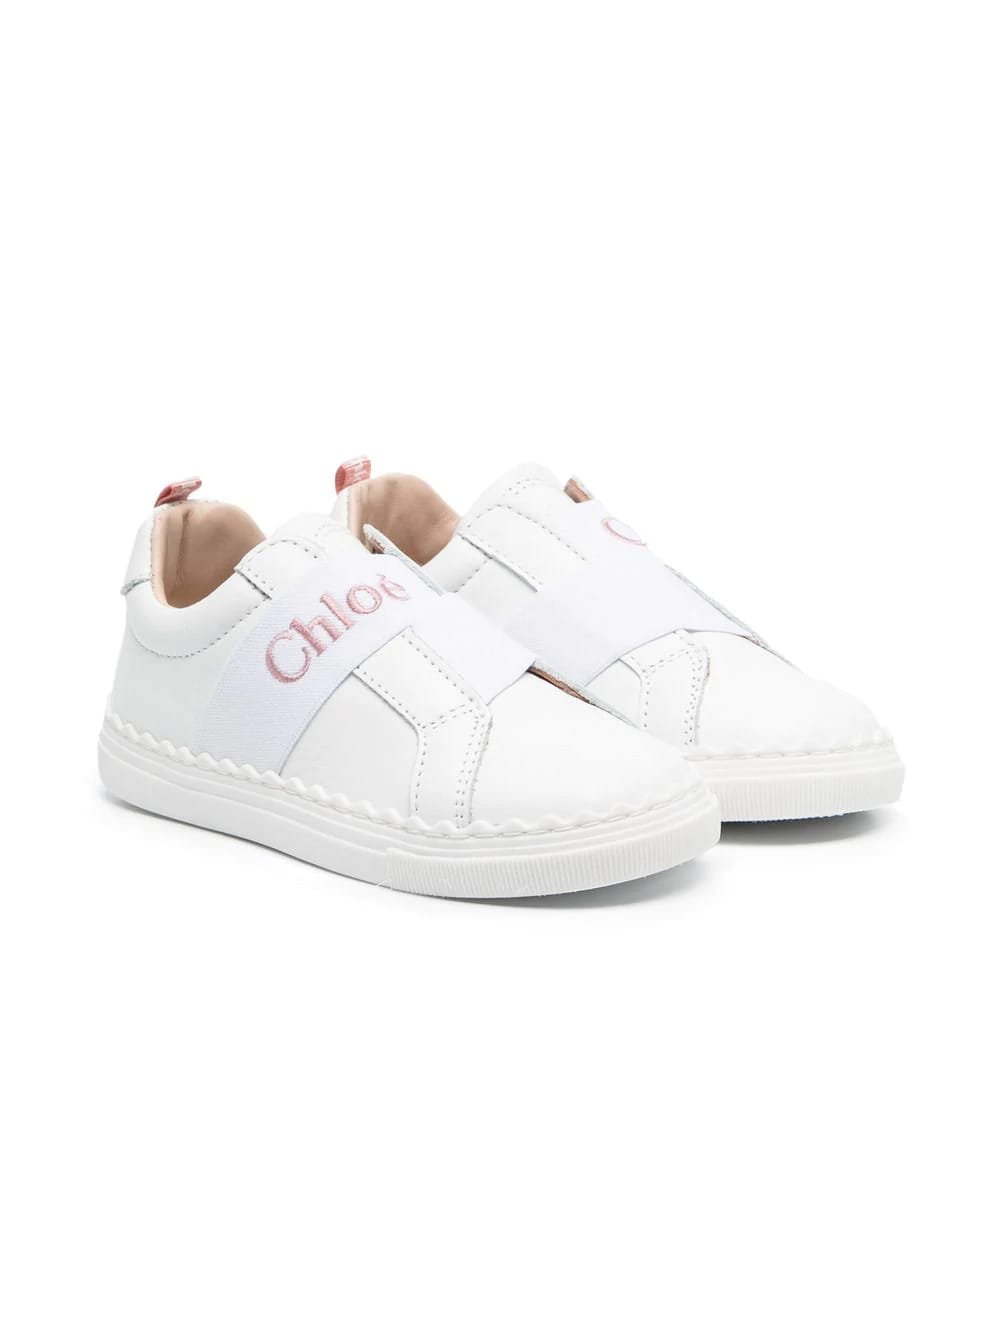 Chloé KID WHITE SNEAKERS WITH CHLOE ELASTIC BAND